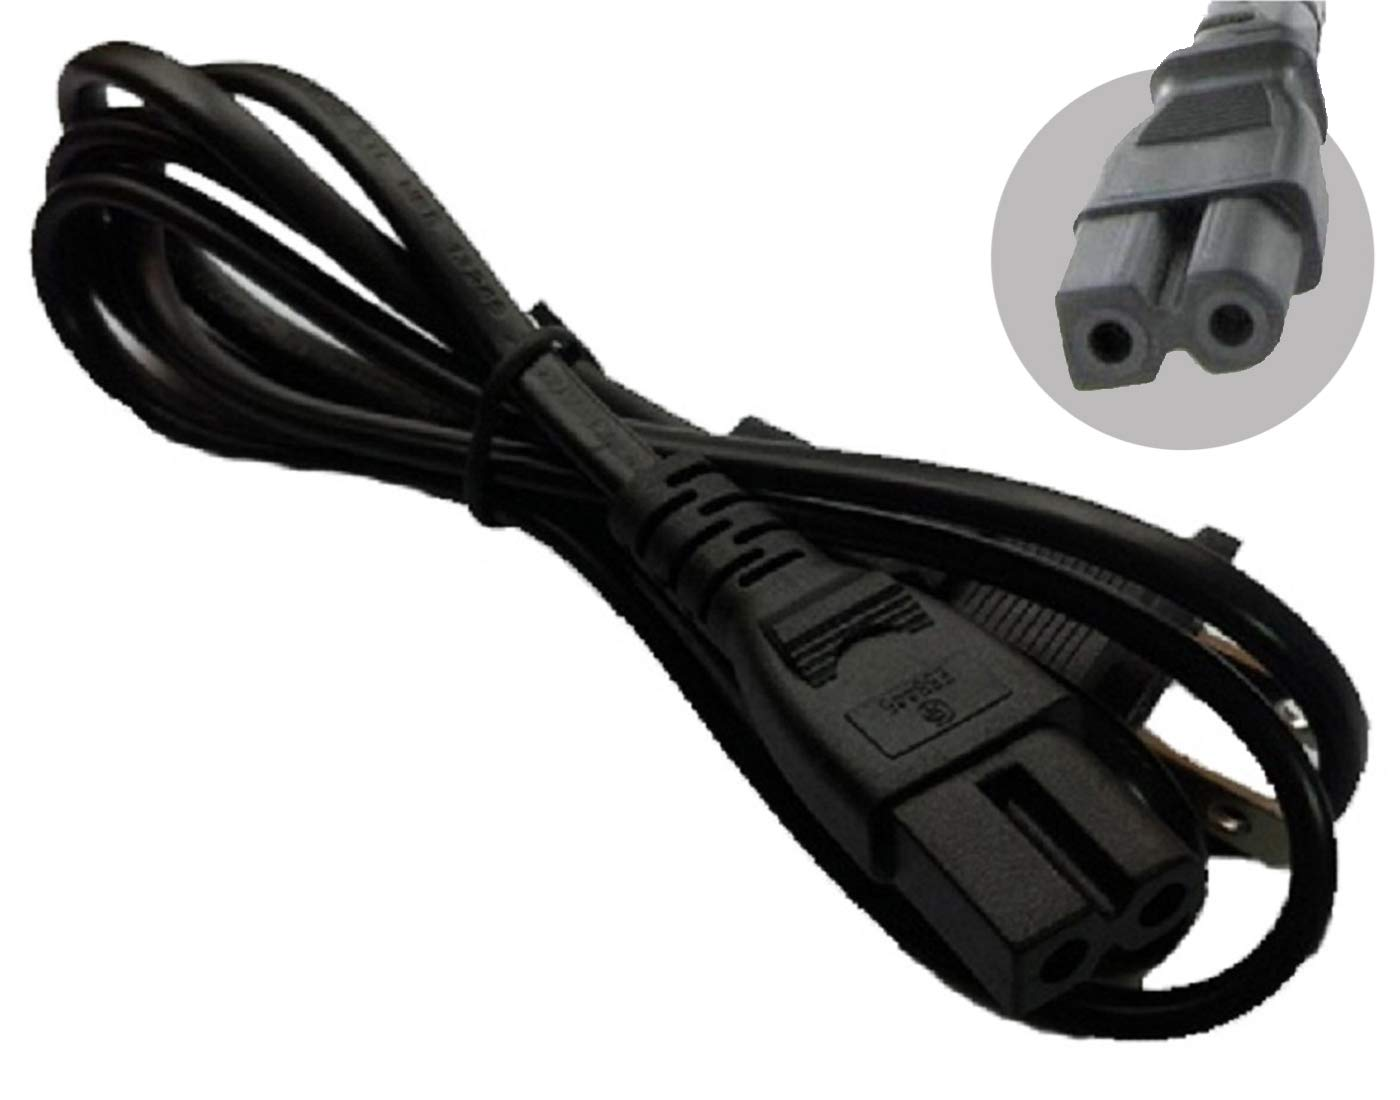 UpBright AC Power Cord Cable For Yamaha Clavinova CLP-411 CLP-511 CP-300 P-200 P-250 PF-500 V2917000 PSR-9000 CLP 220 240 311 380 CLP-400 CLP-500 CLP-840 CLP-920 CLP-930 CLP-950 YDP-101 YDP-223 Piano